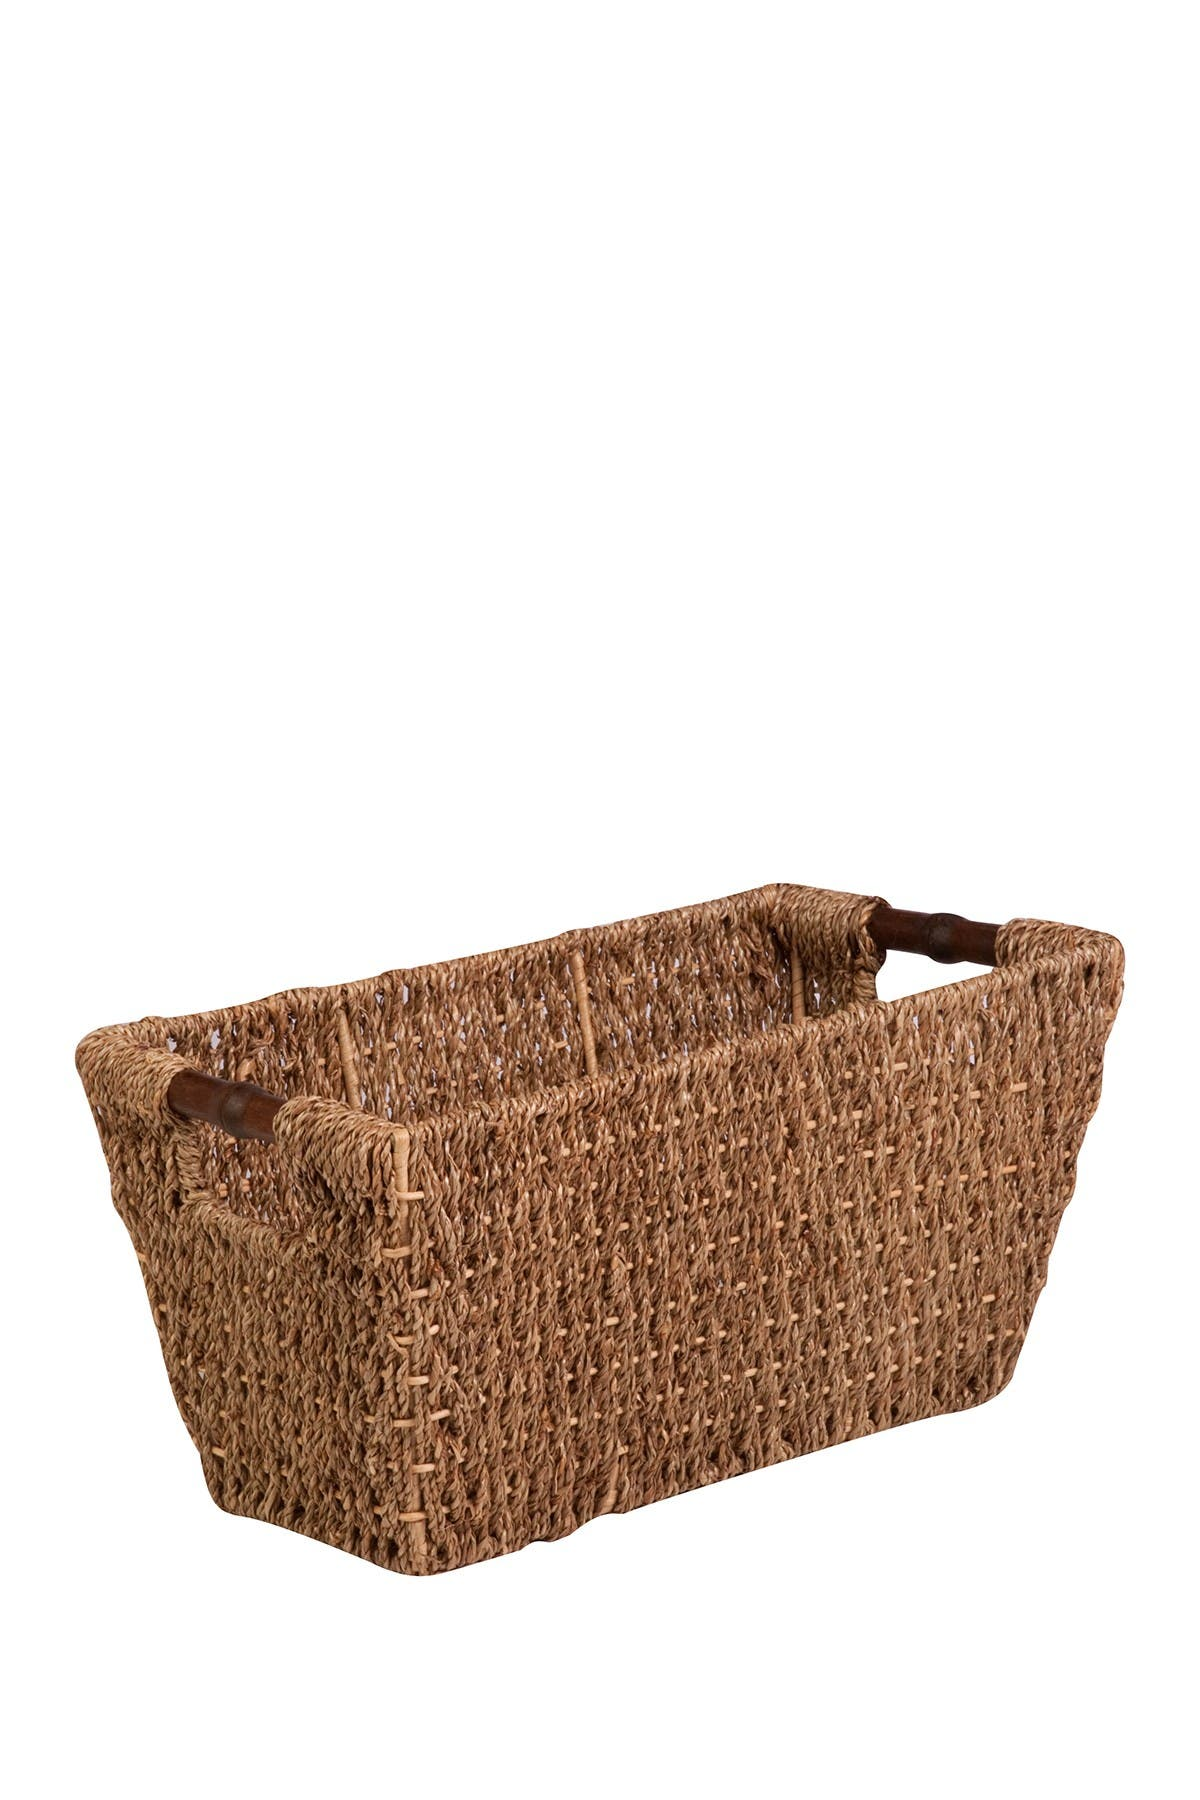 Image of Honey-Can-Do Medium Natural Seagrass Basket